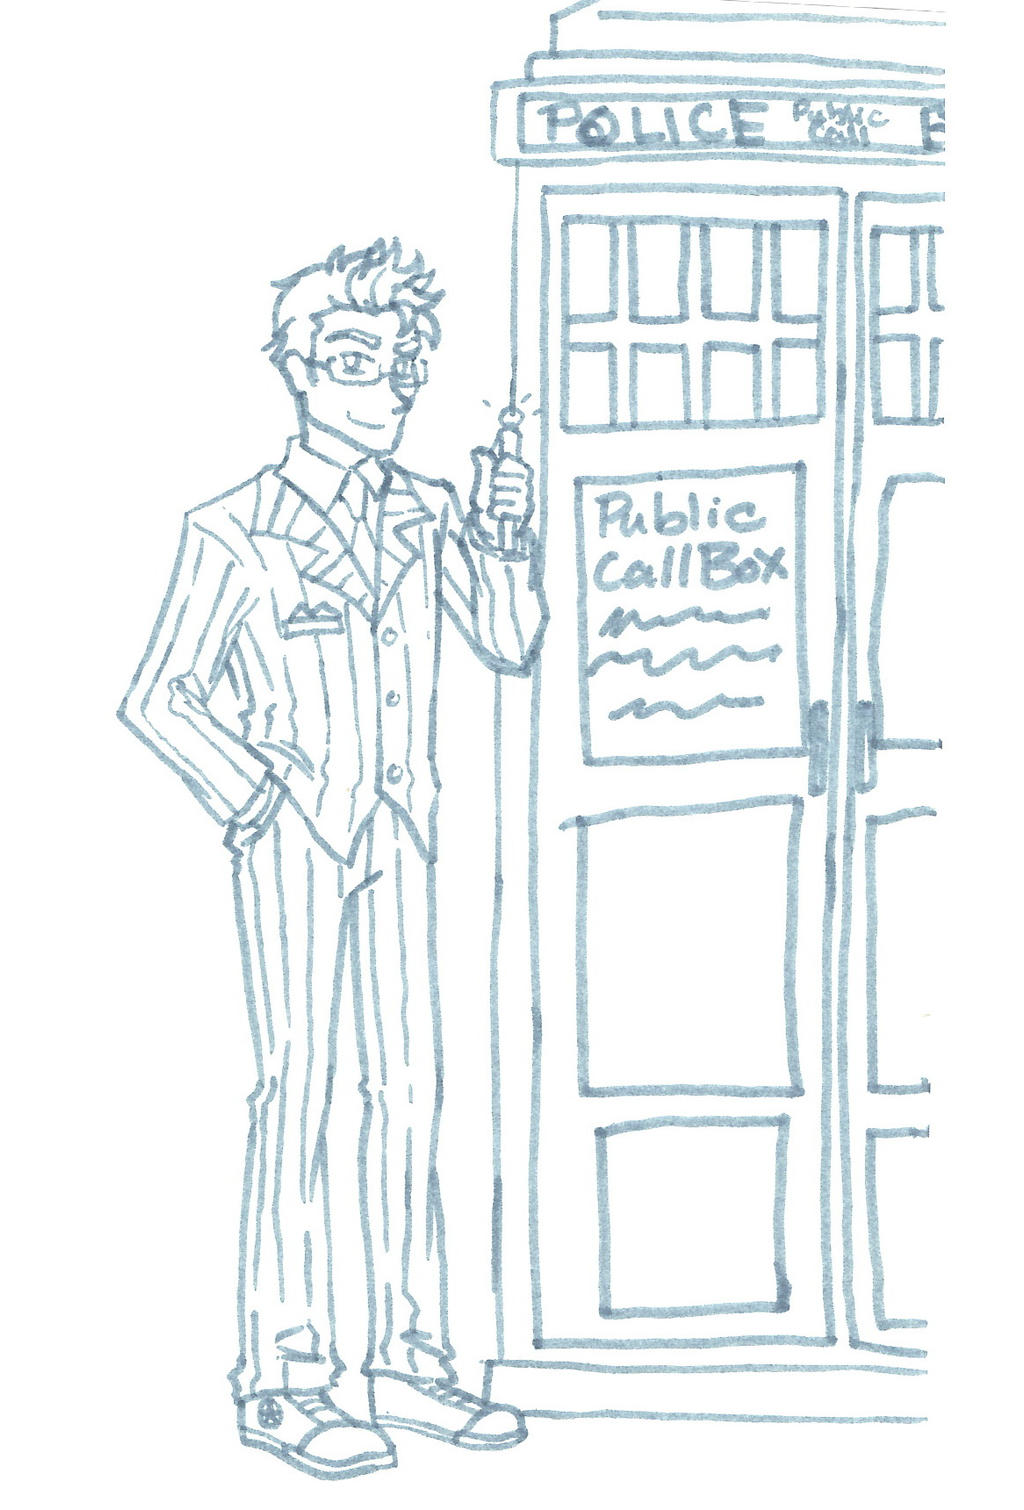 The Doctor by Poefish